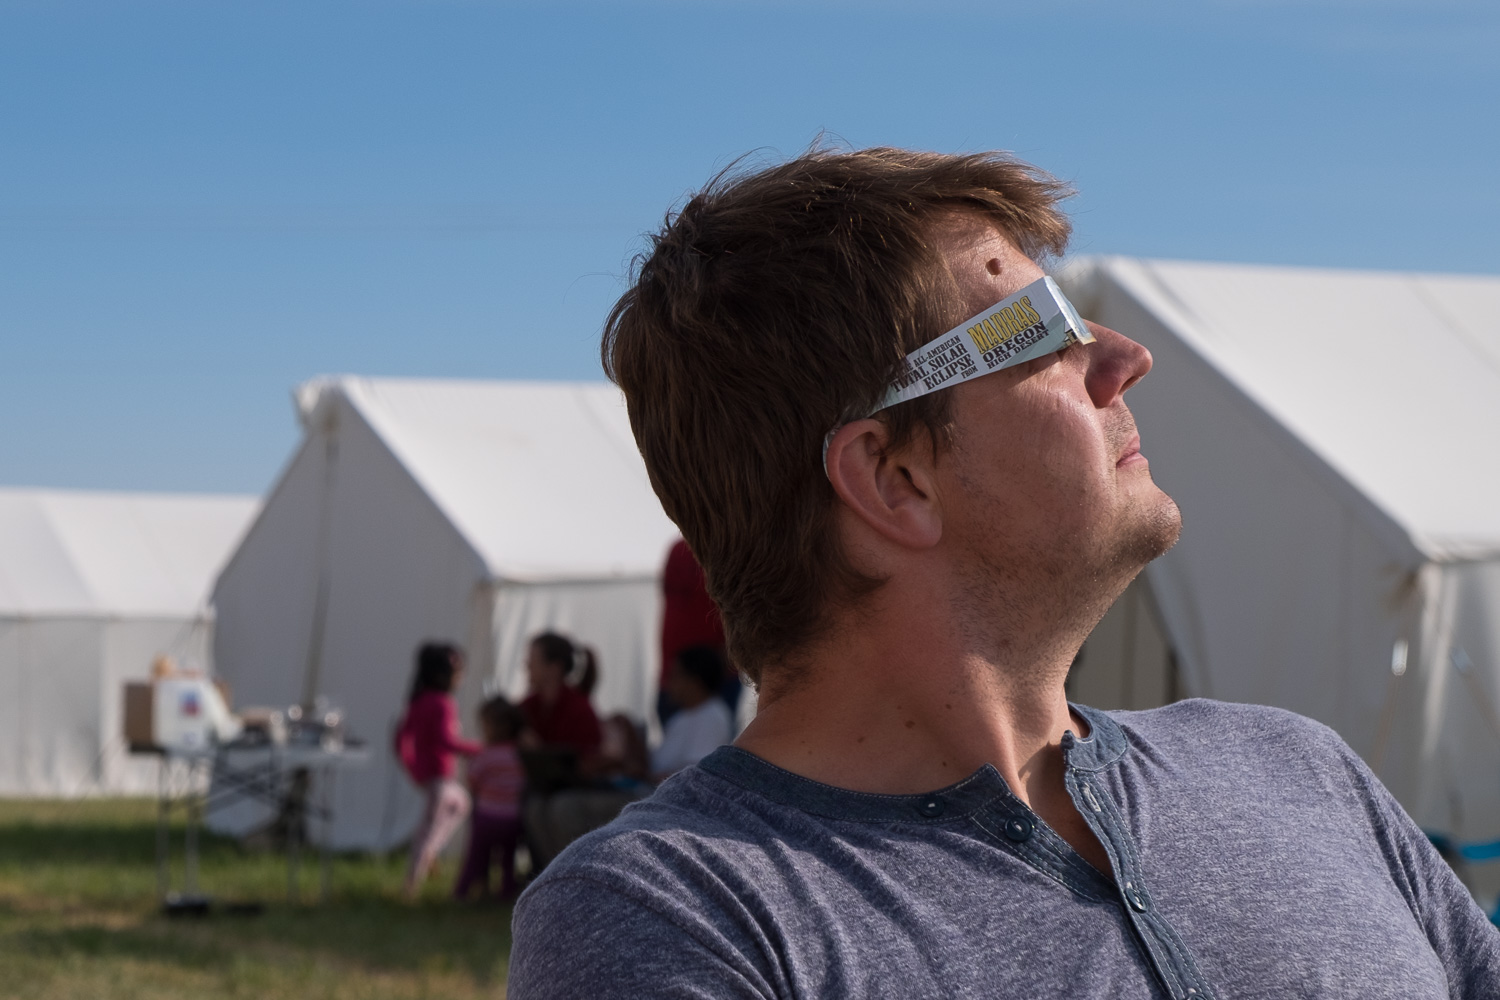 Eclipse glasses on! Oregon Solarfest (Image: Paola Thomas / Seattle Refined)